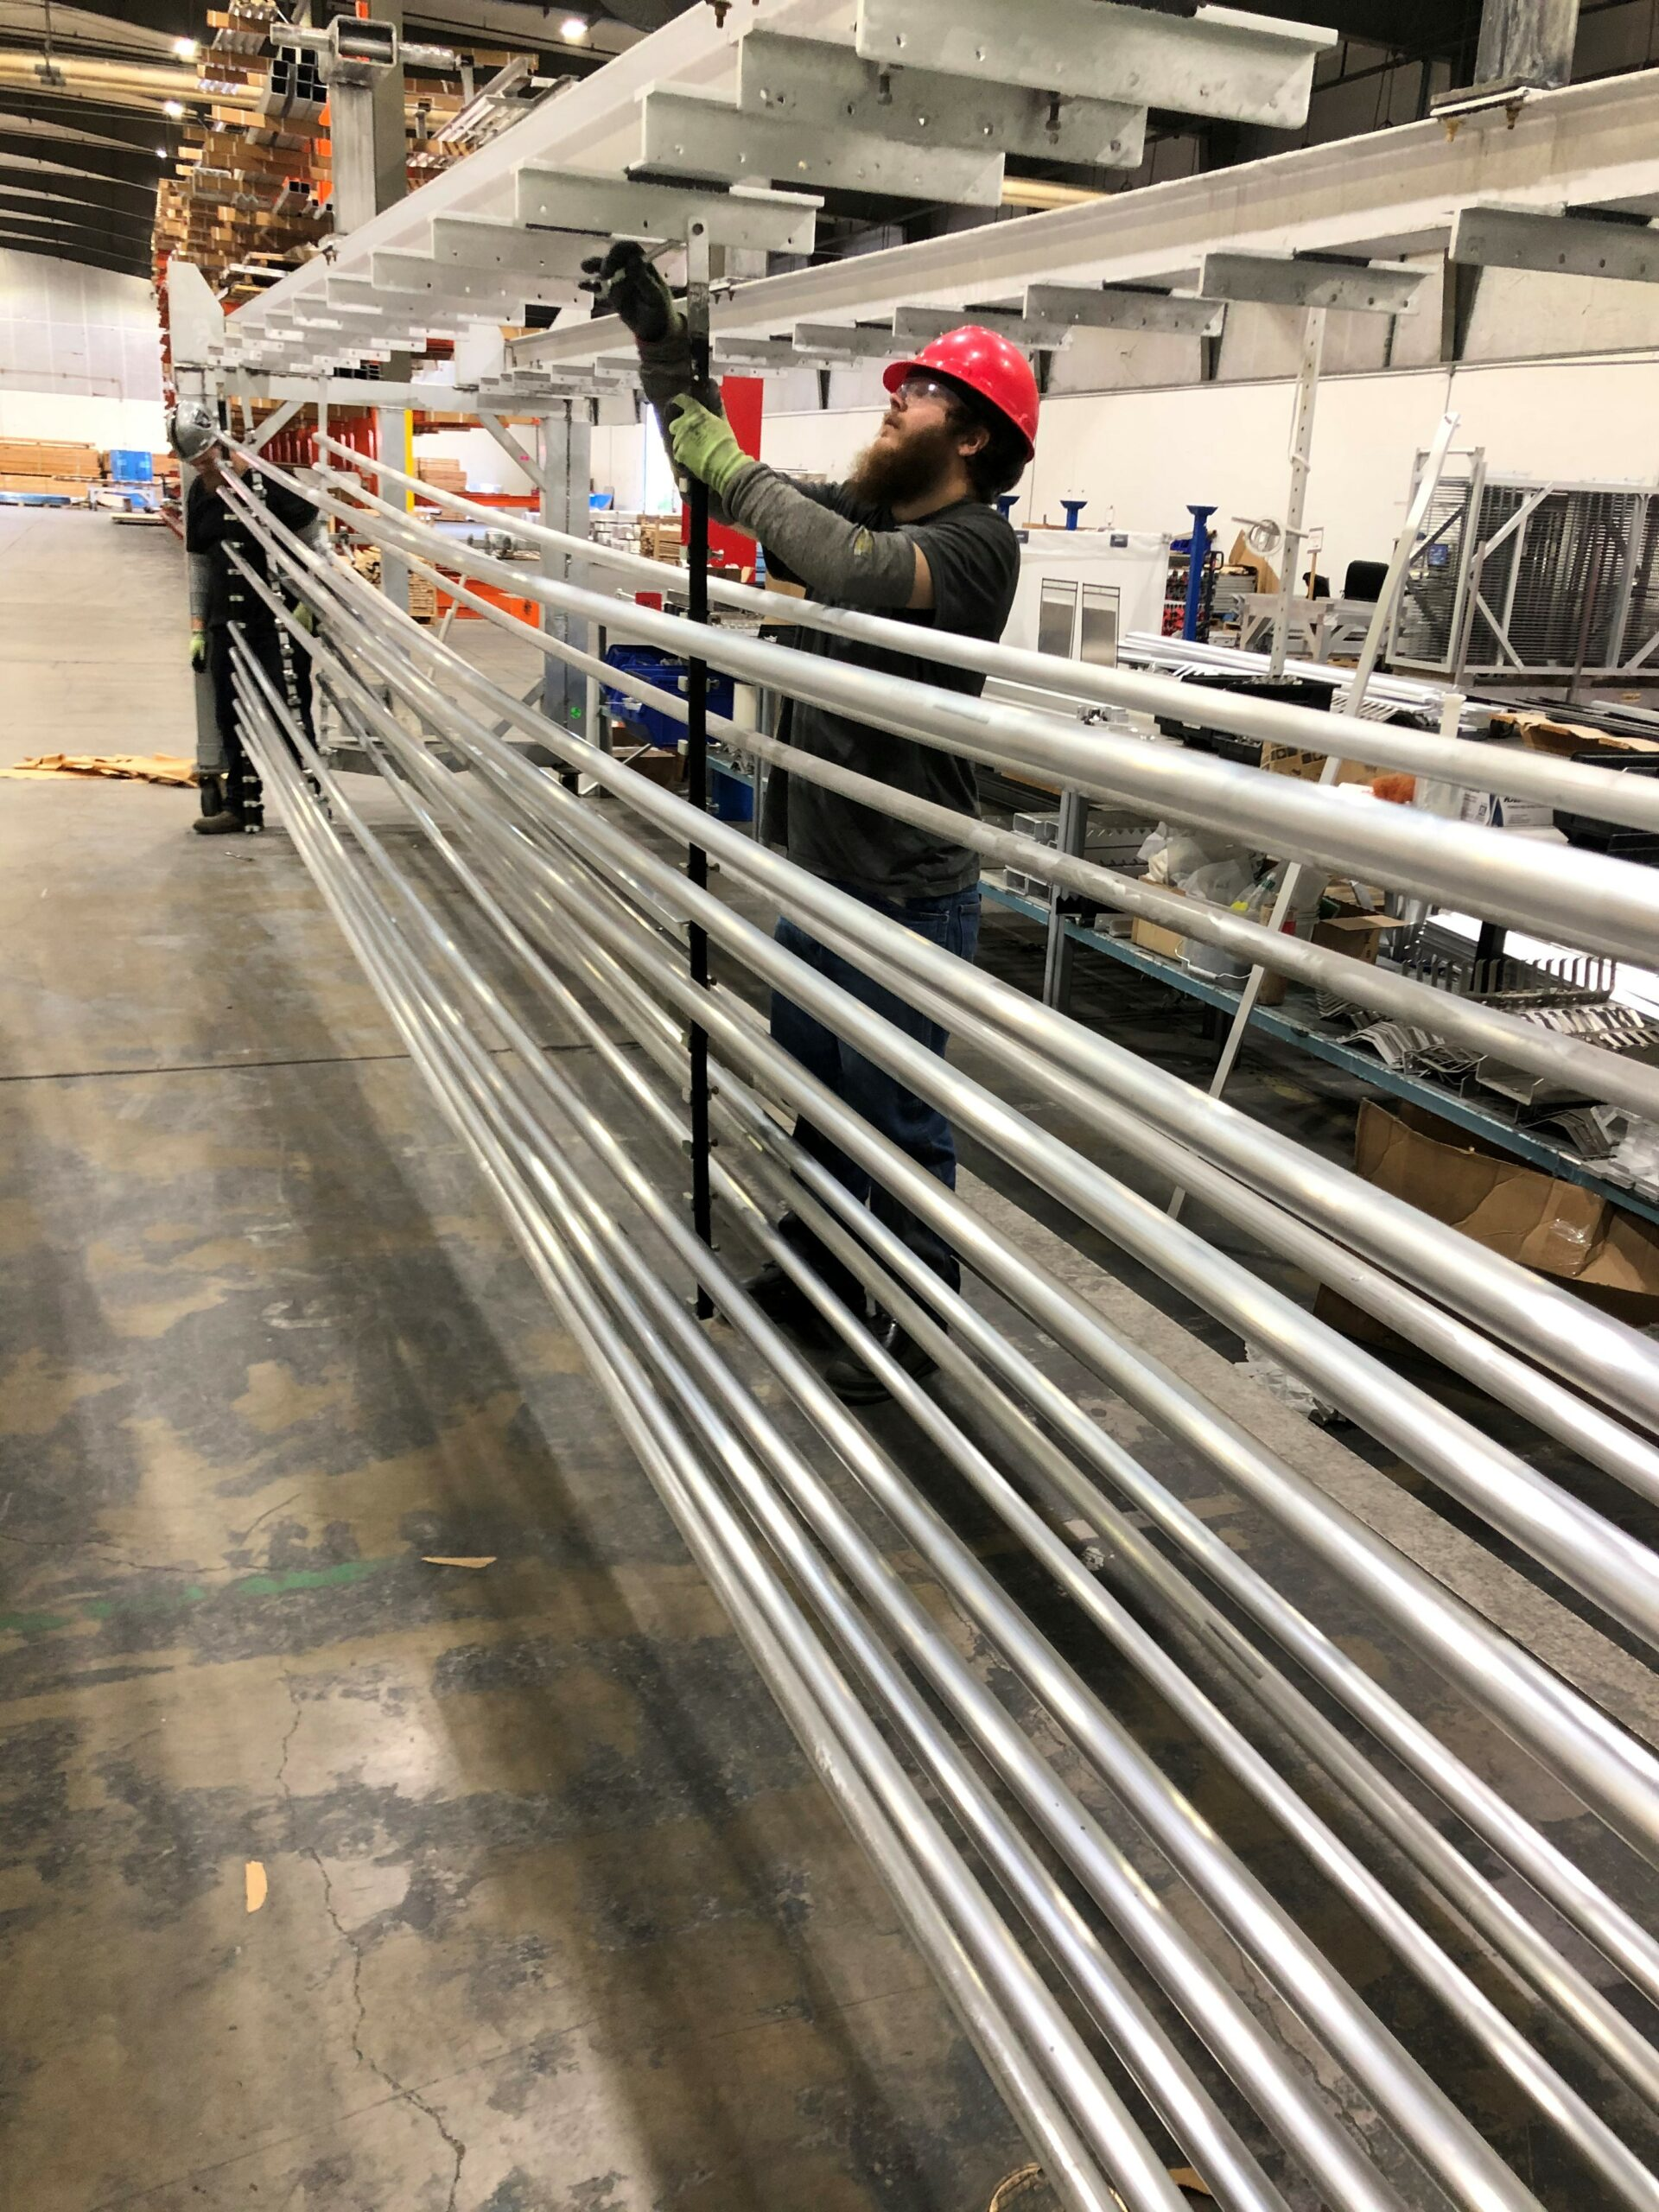 SAF Employee shows how parts are racked as the first step in anodizing